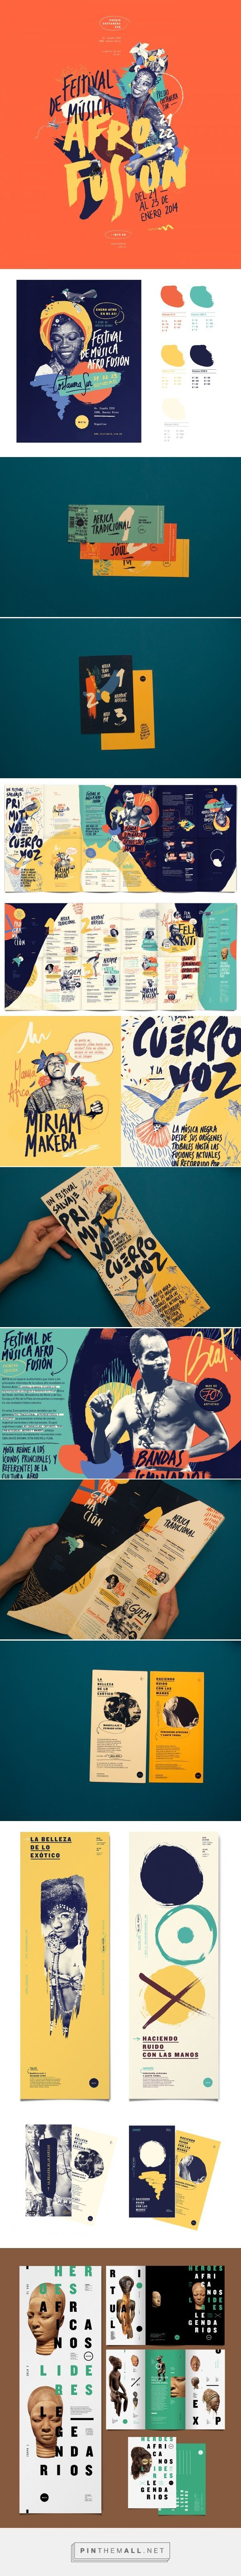 AFRO FUSION FESTIVAL on Behance - created via https://pinthemall.net. If you like UX, design, or design thinking, check out theuxblog.com